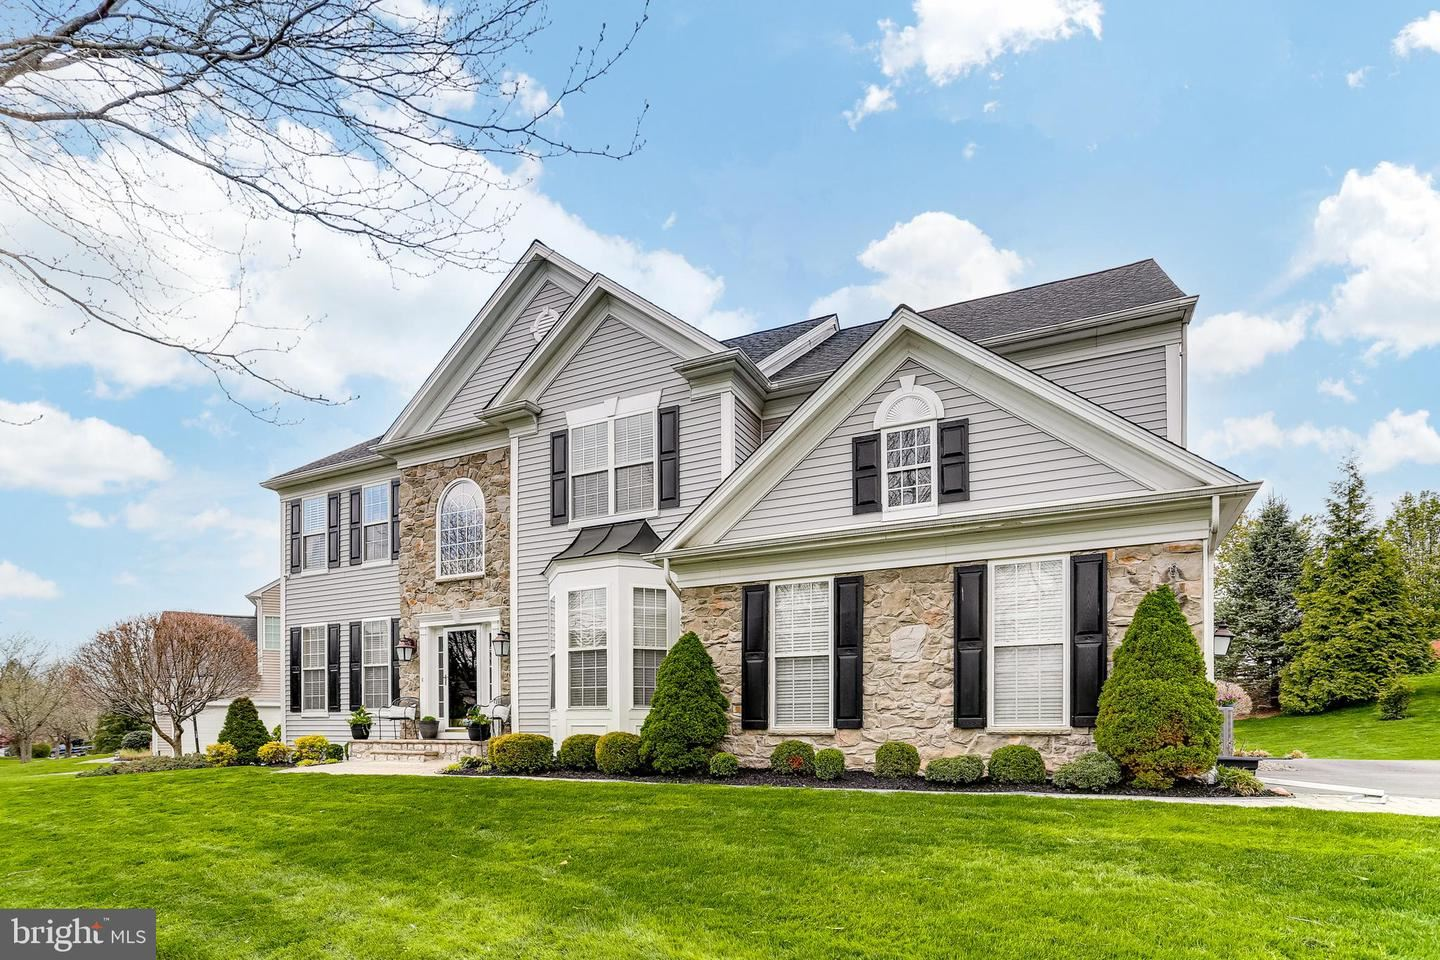 12308 SILVER CUP CT, Reisterstown, MD 21136 - MLS#: MDBC526188